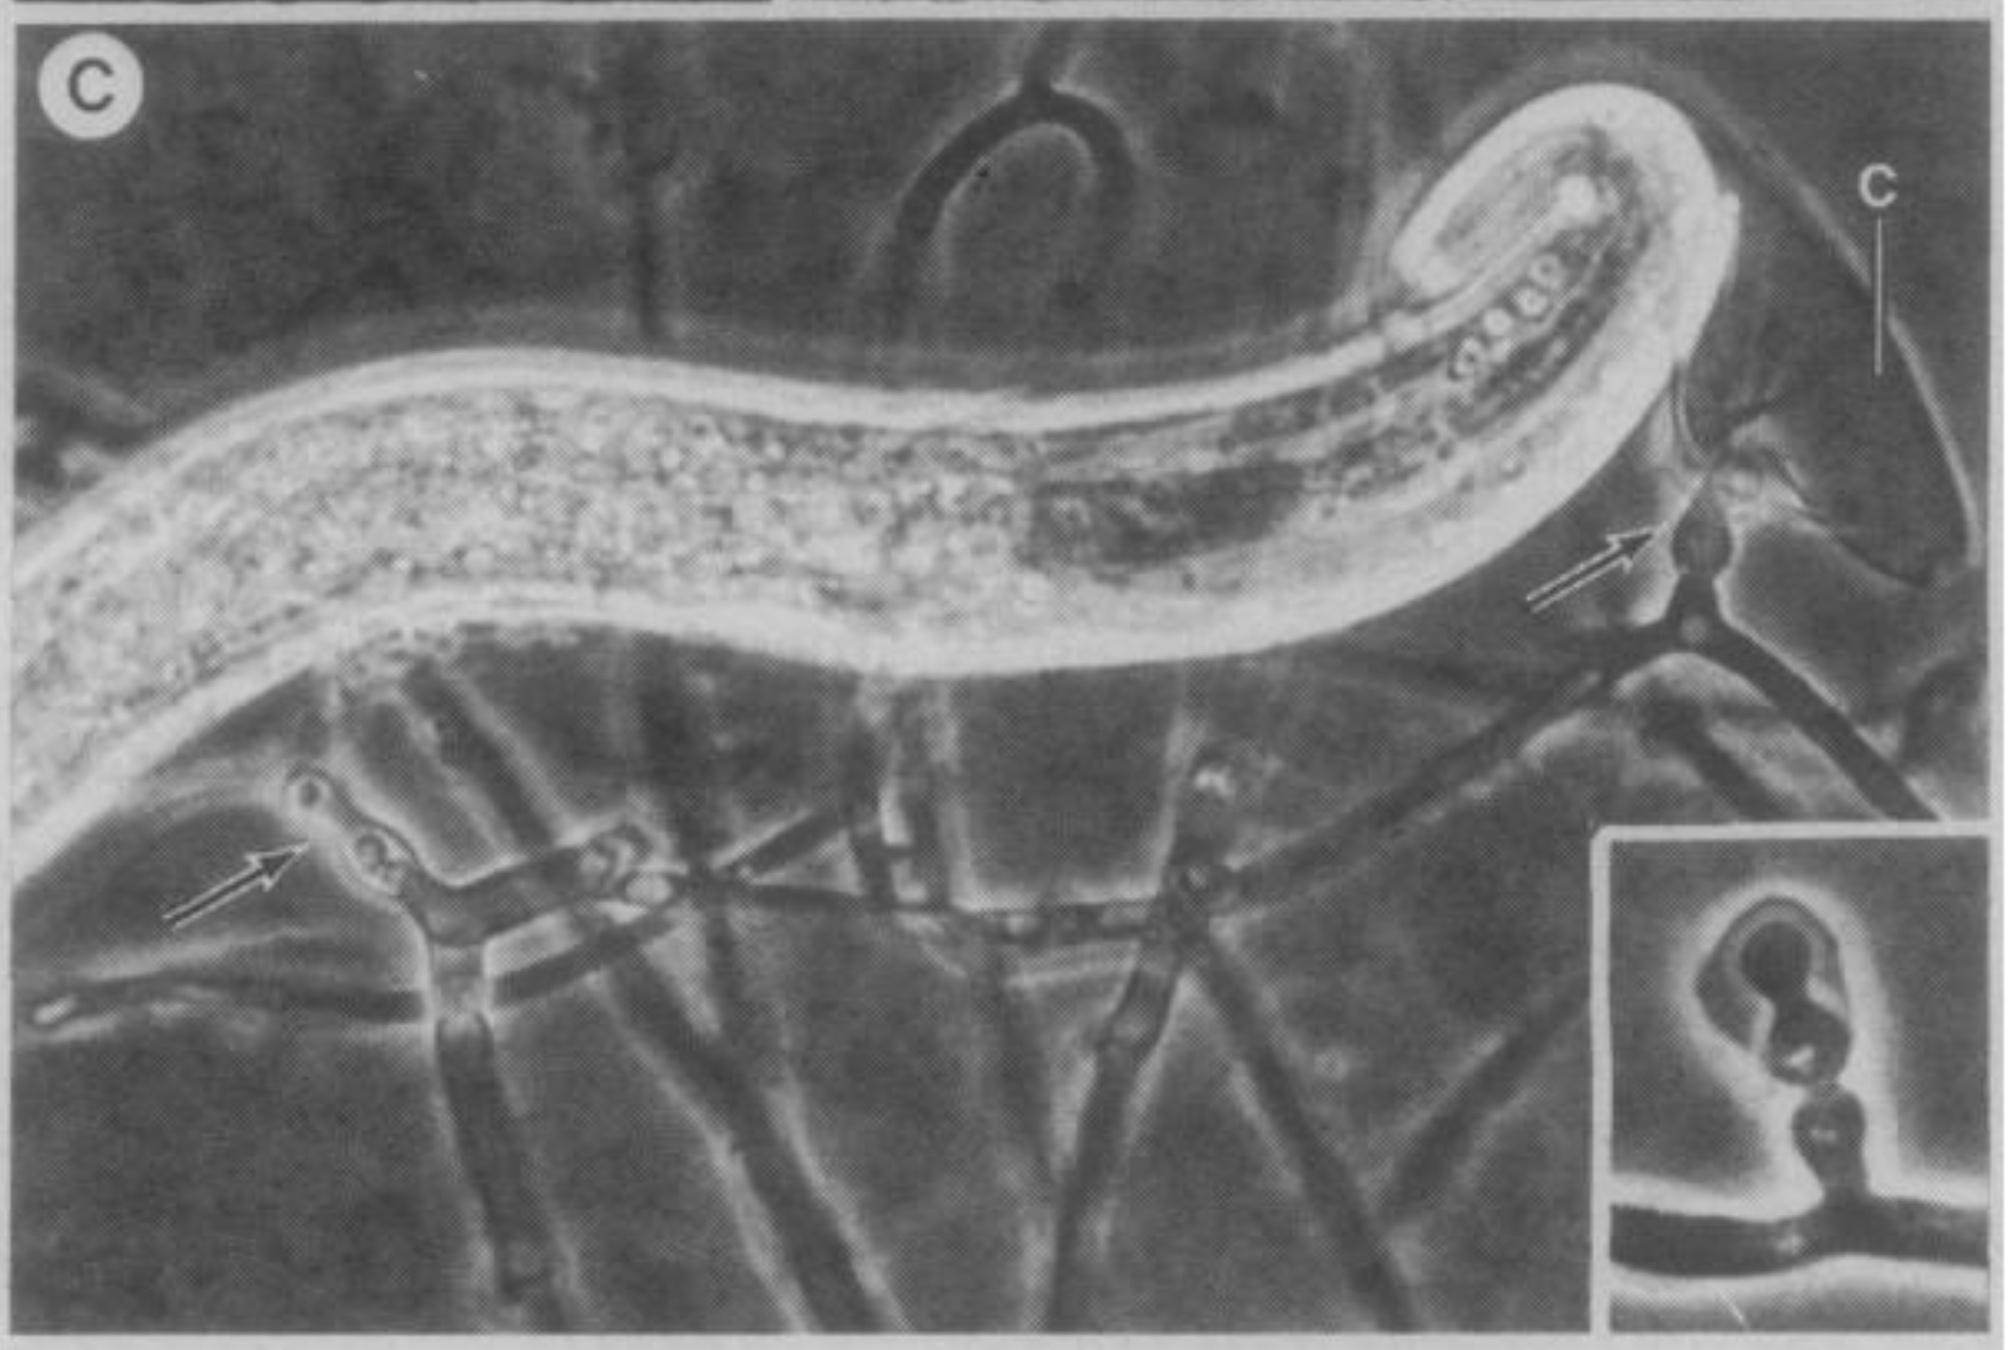 H. mastrucata  and its  s ticky conidia (arrows and inset image) adhering to nematode.  Thorn and Barron 1984 .